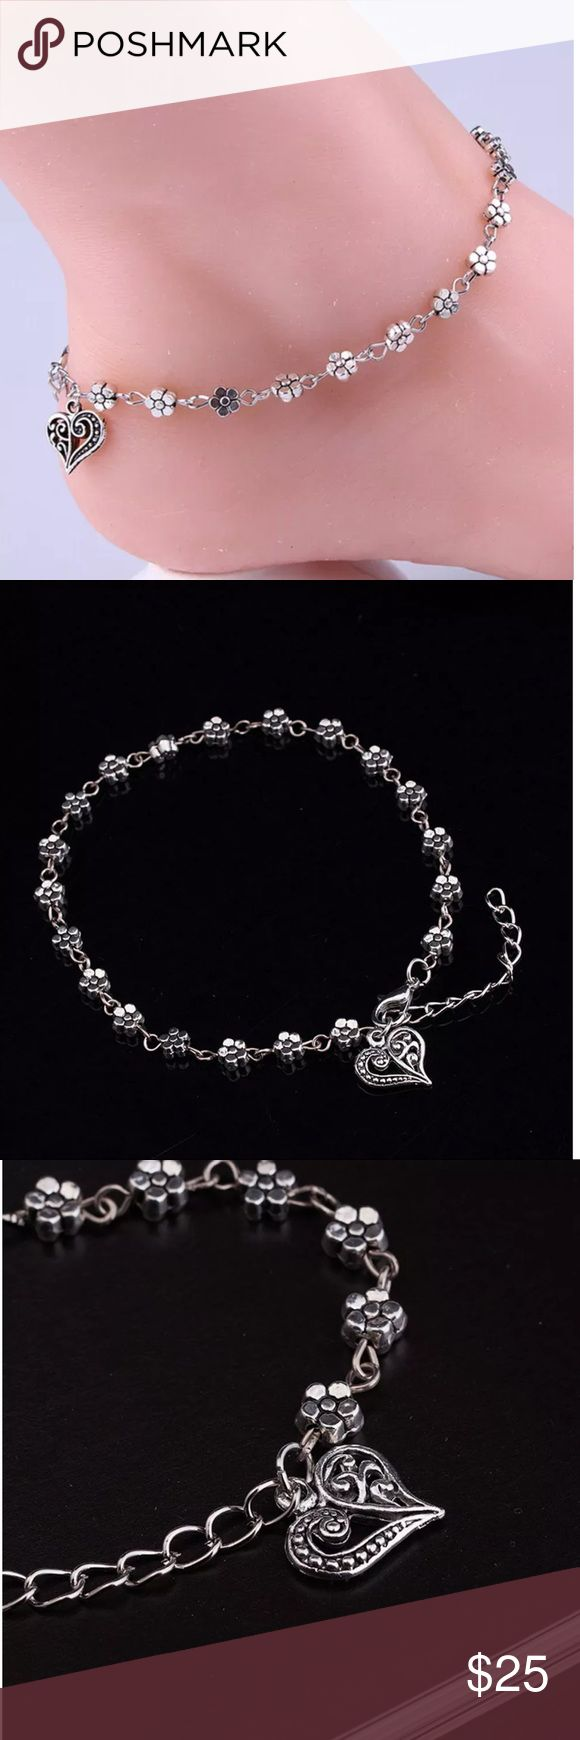 accessories for ankle jewelry item fahion on crystal bracelet love fashion in chain shape foot anklets beach bracelets girl from anklet women butterfly designer